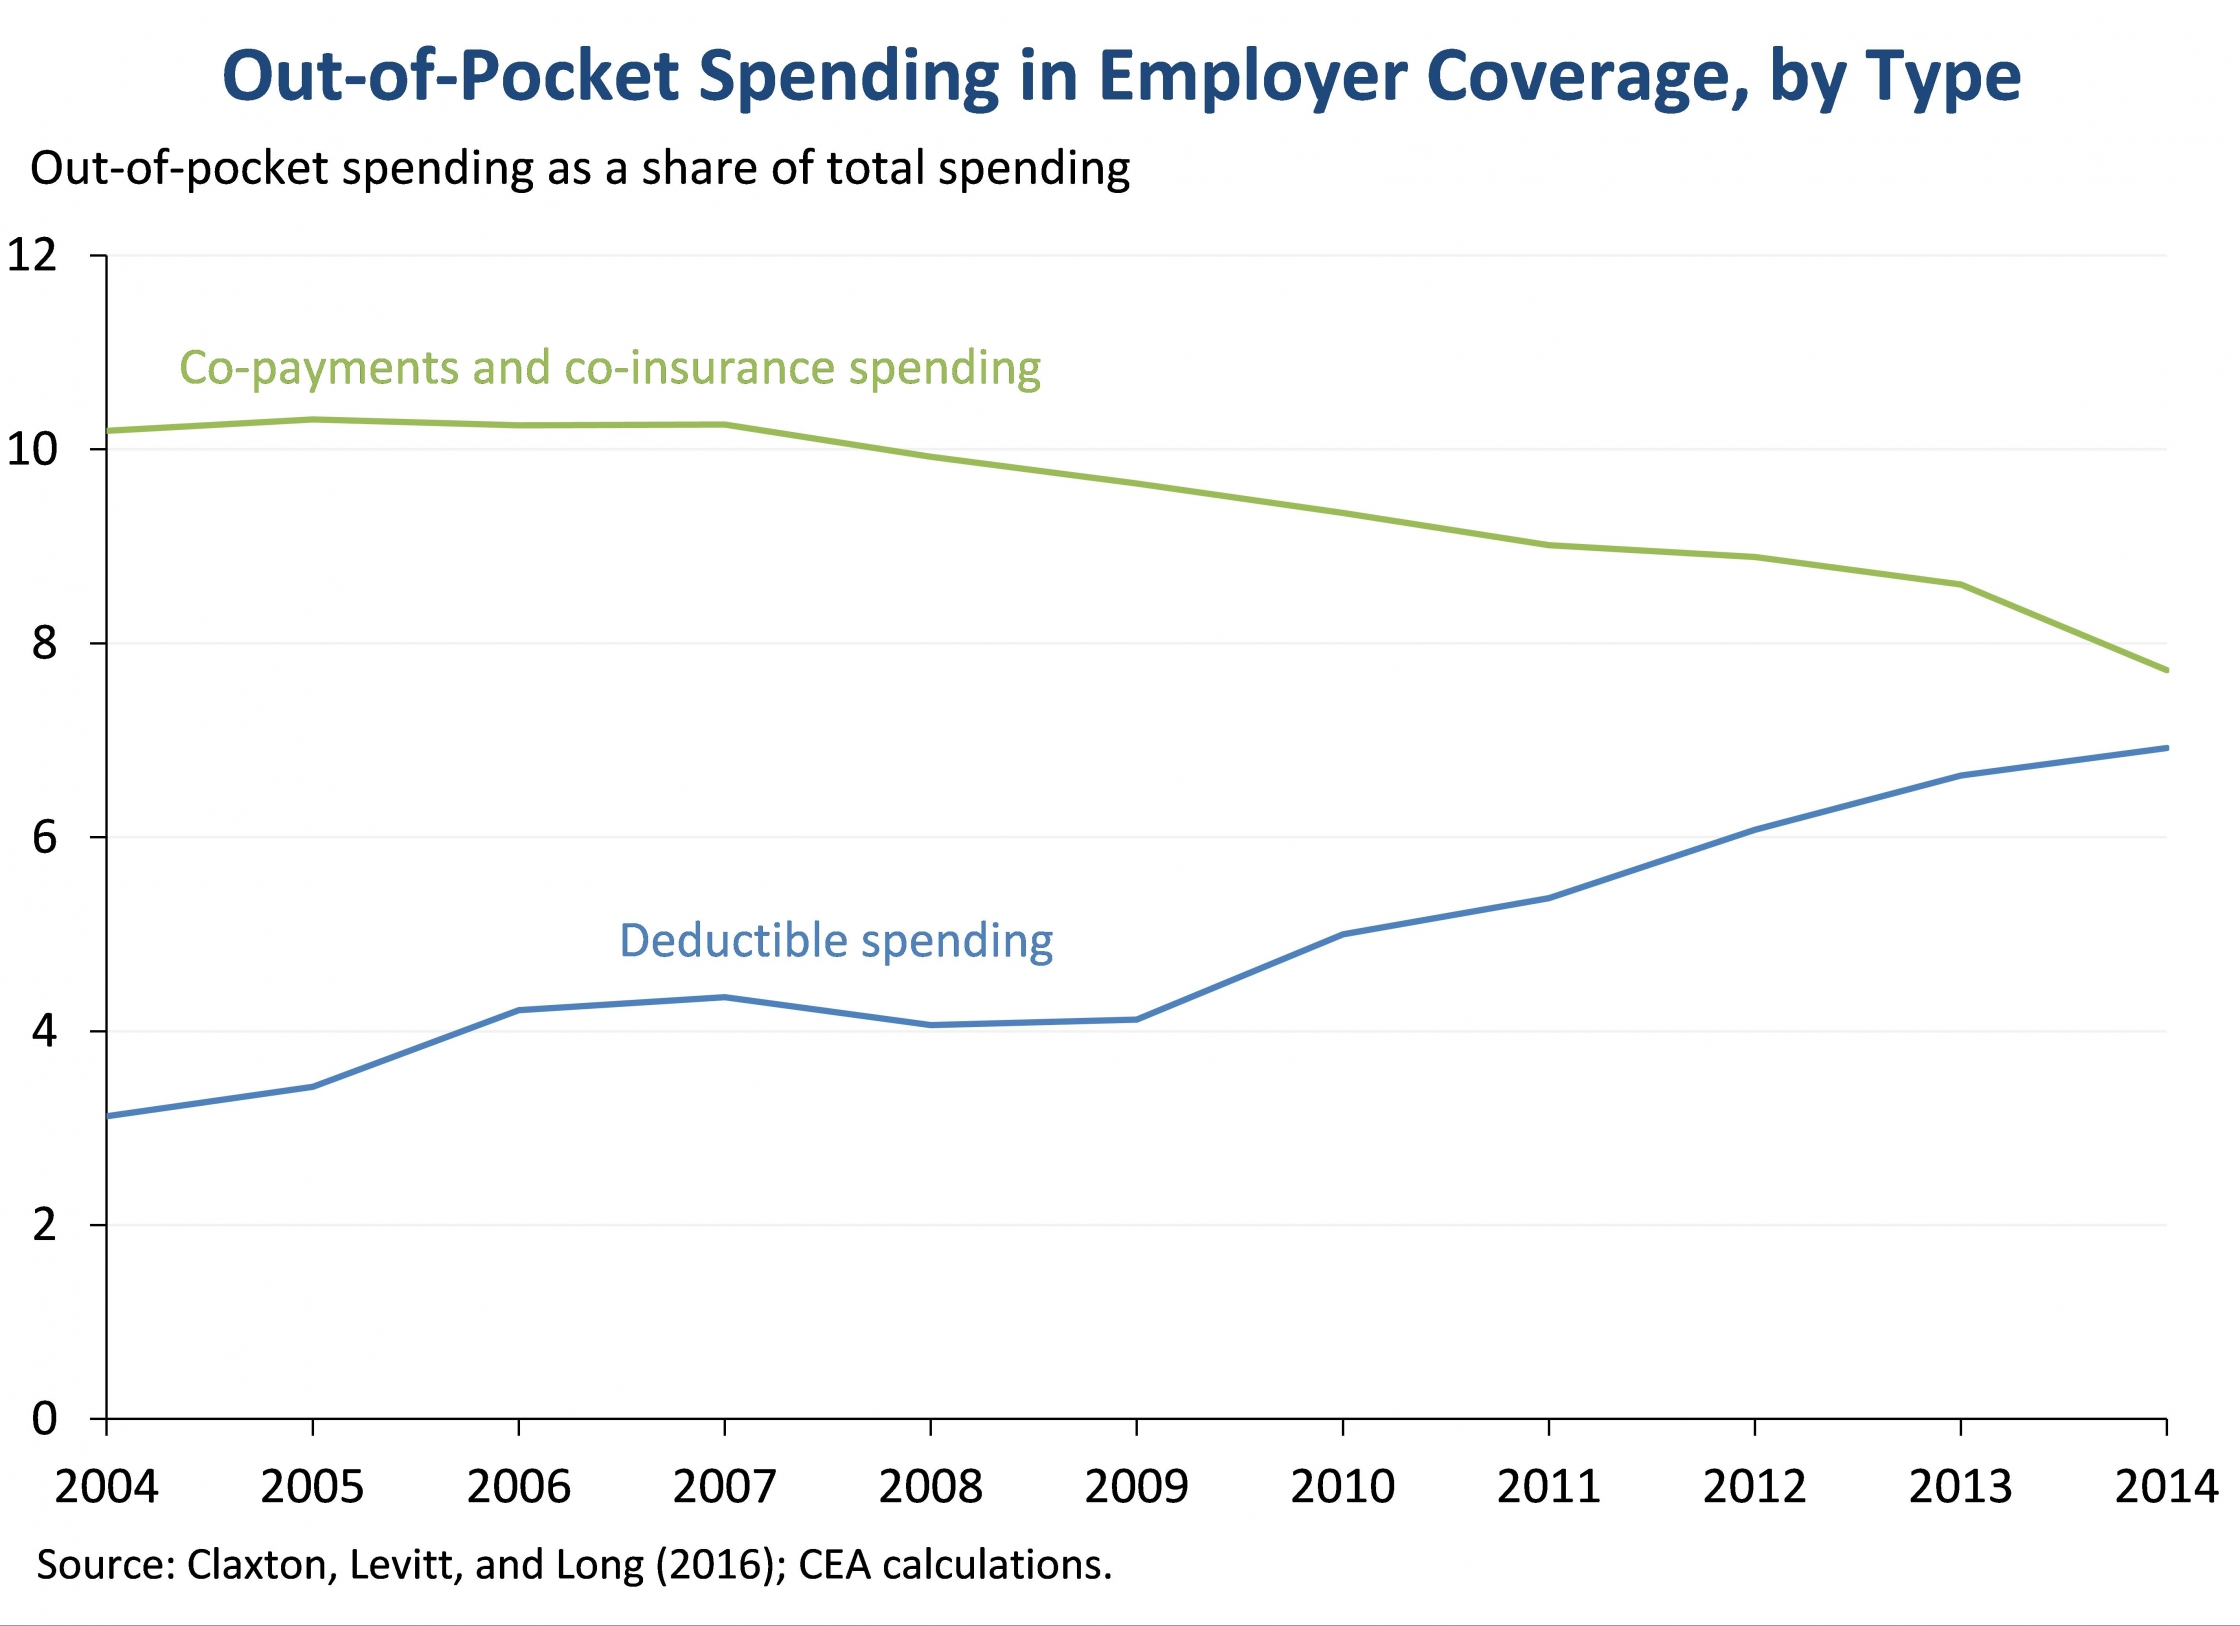 Out-of-Pocket Spending in Employer Coverage, by Type